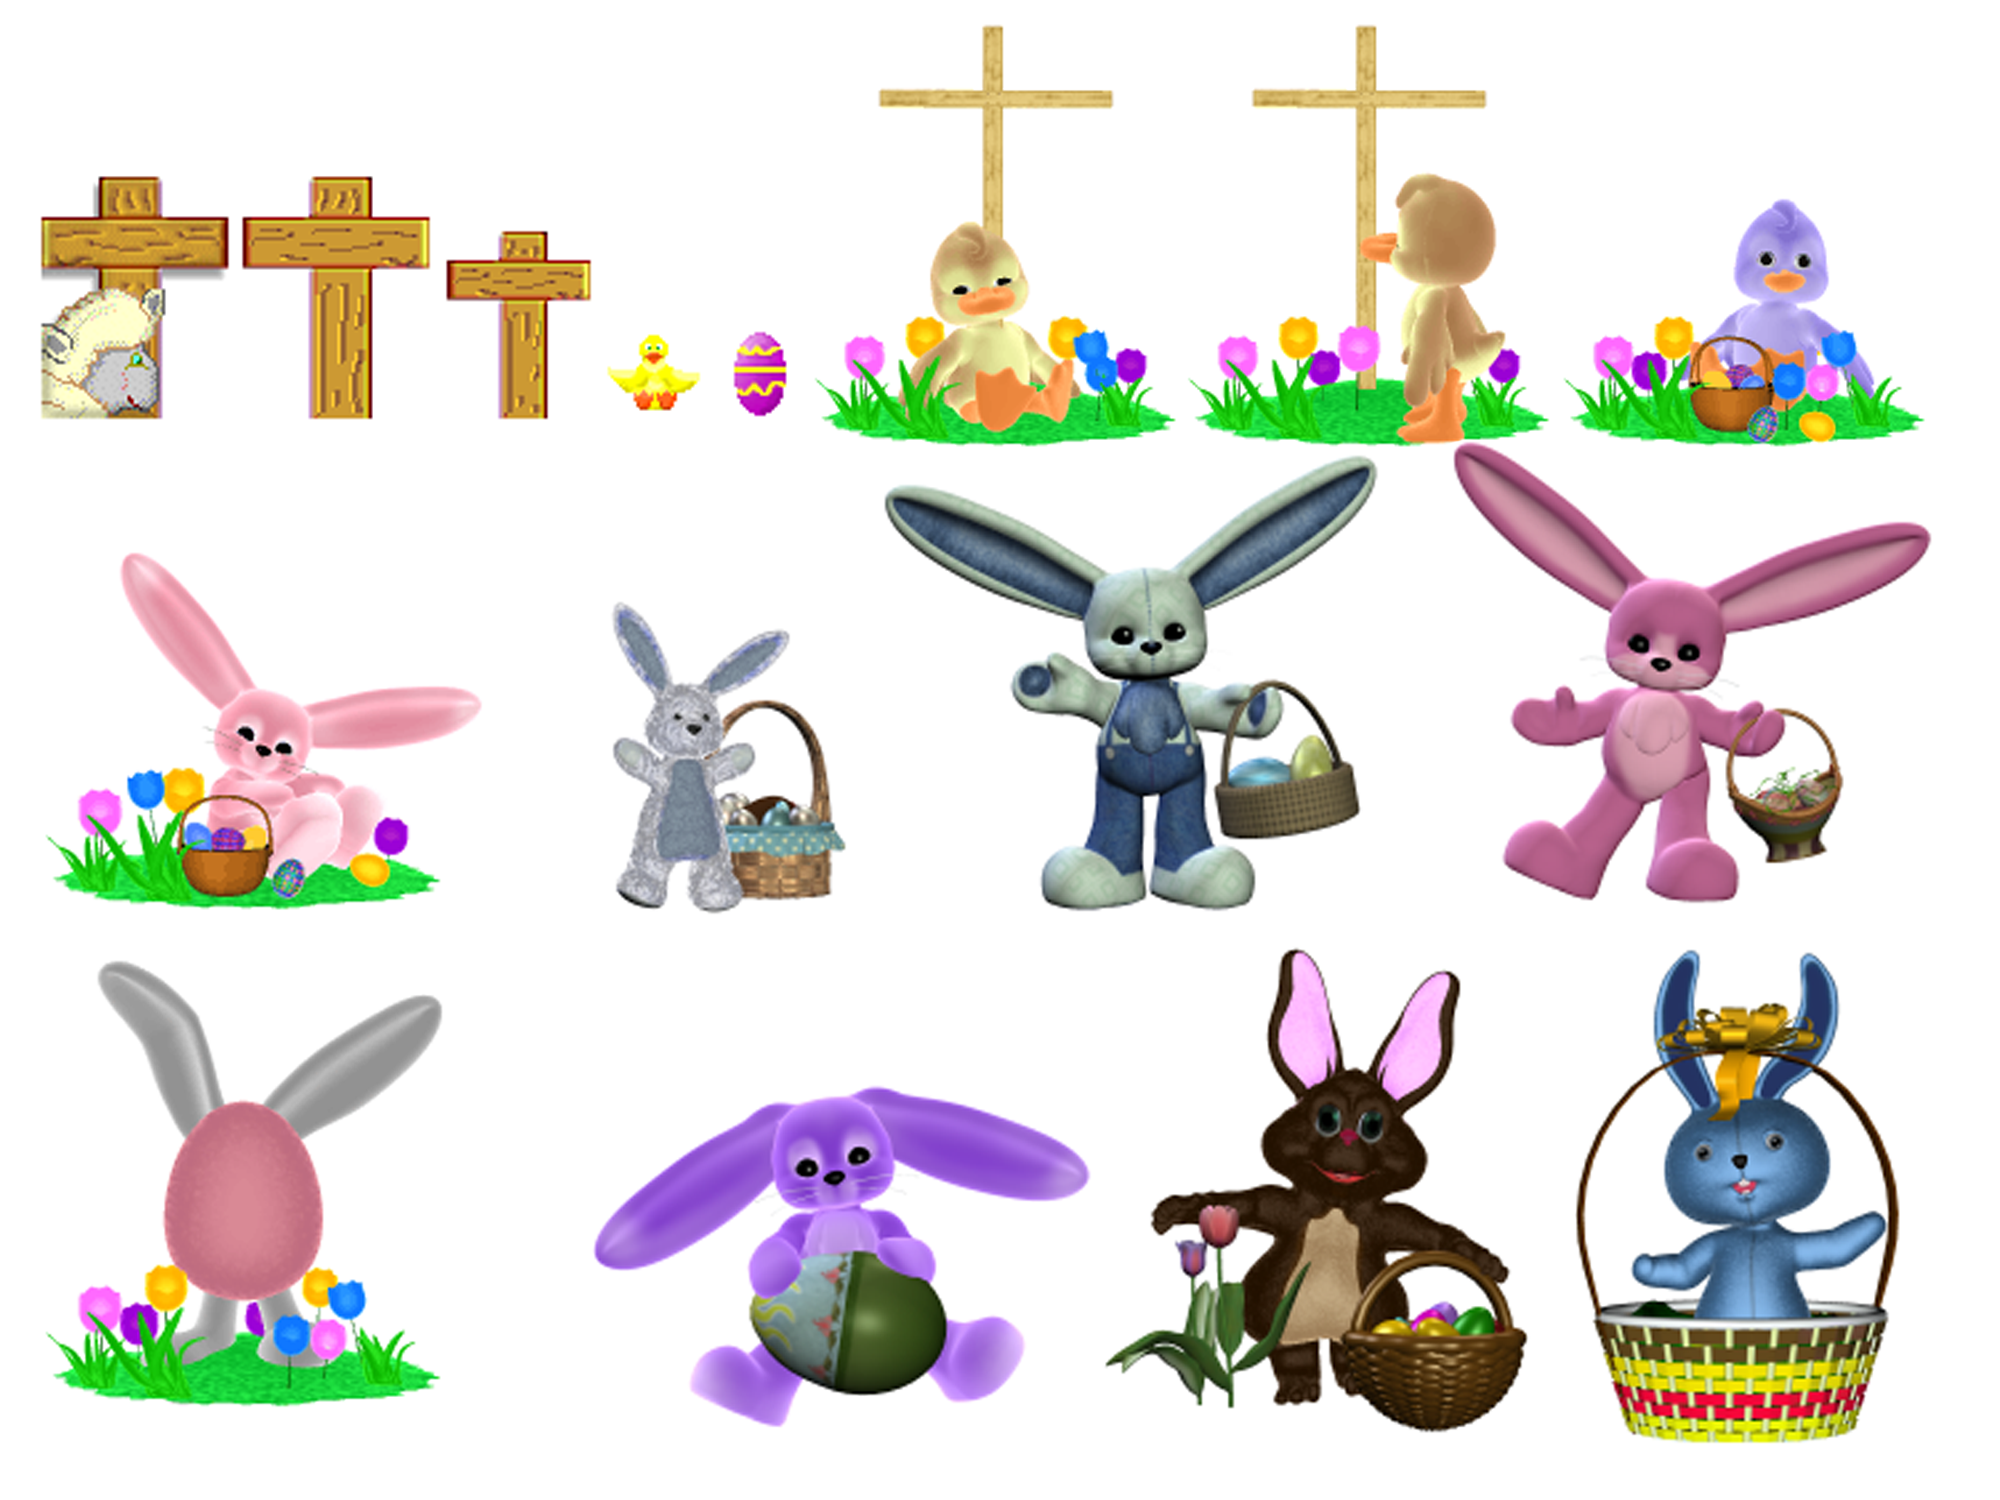 Easter bunnies, chicks, eggs, and crosses